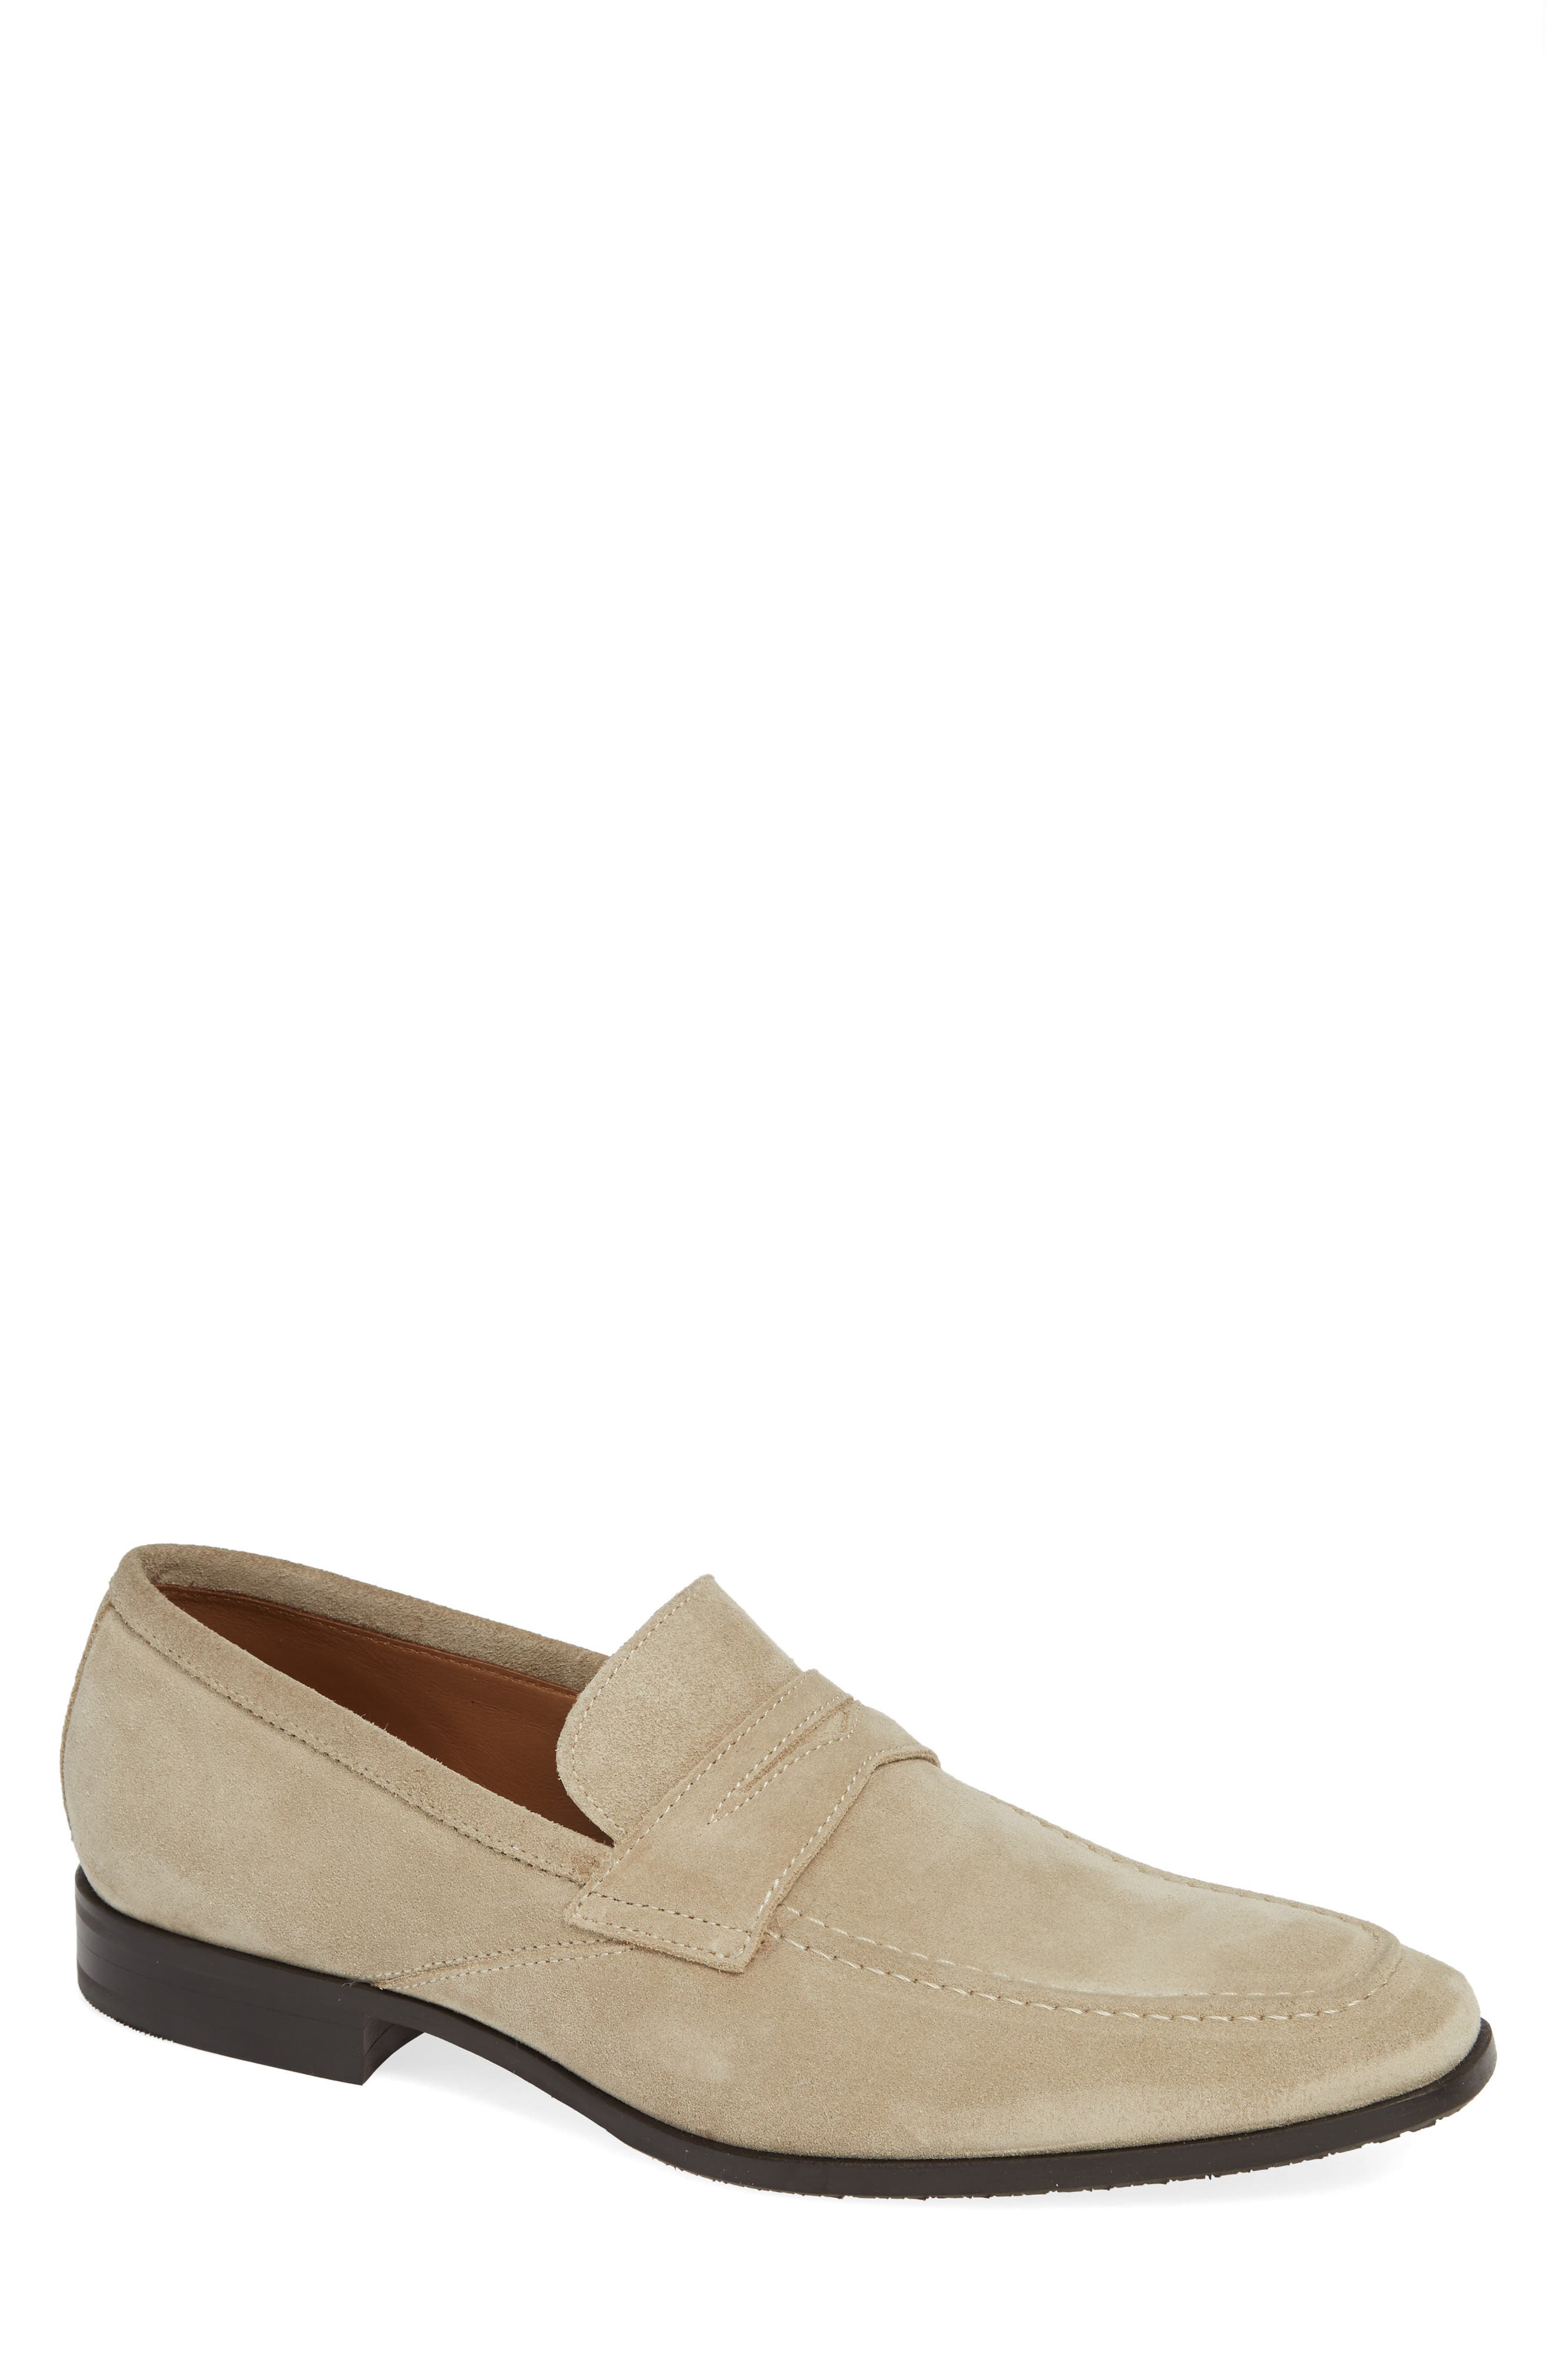 Nicasio Apron Toe Penny Loafer,                             Main thumbnail 1, color,                             SAND SUEDE